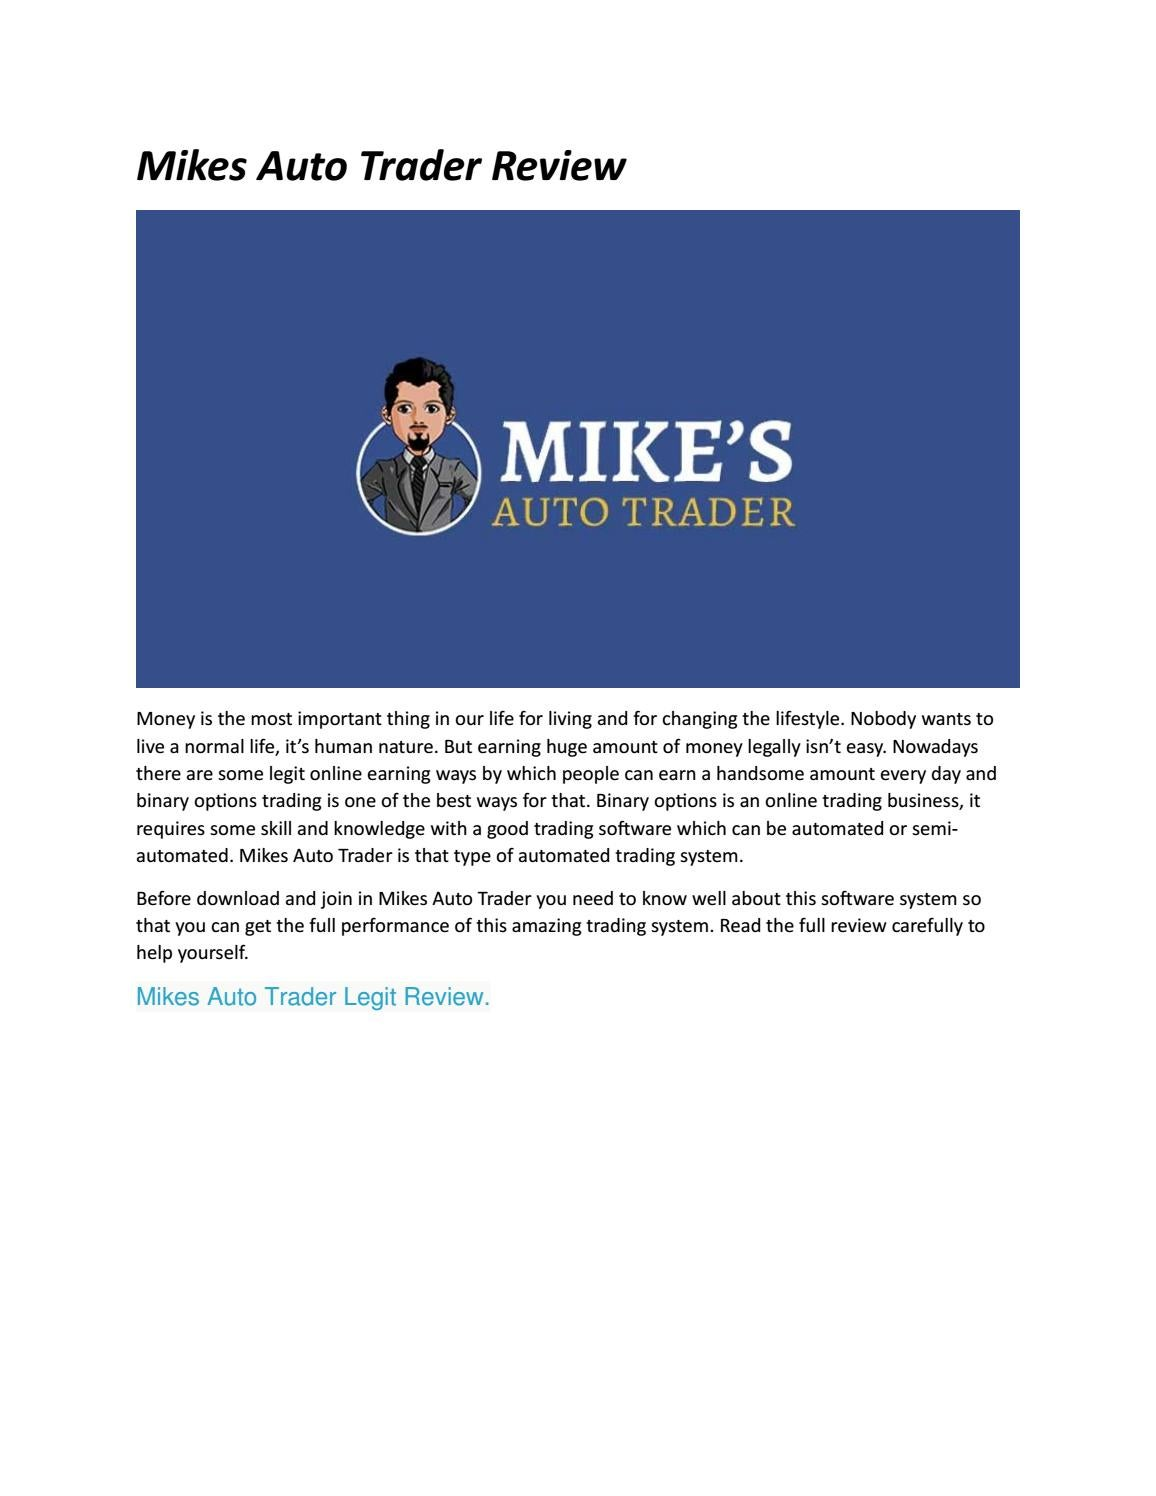 Mike auto trader binary options